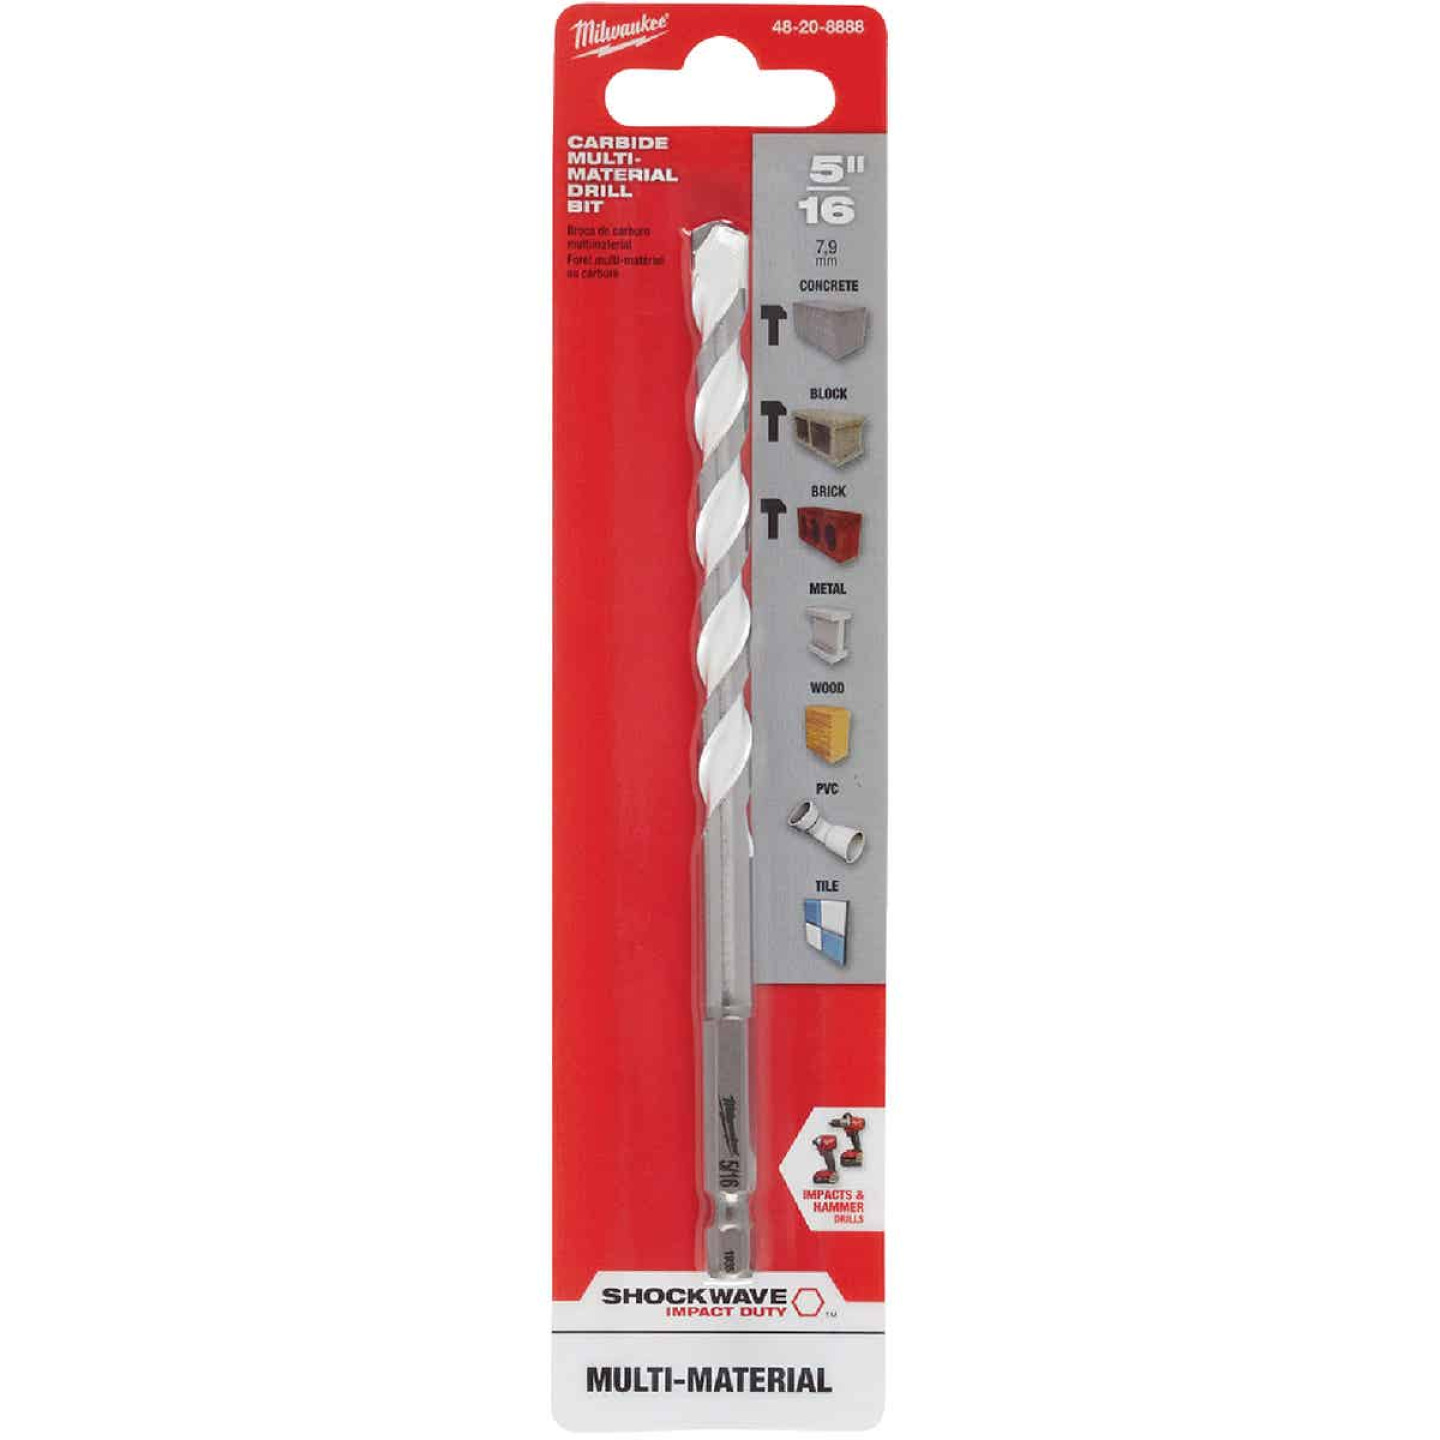 Milwaukee Shockwave 5/16 In. Carbide Multi-Material Hex Shank Drill Bit Image 2